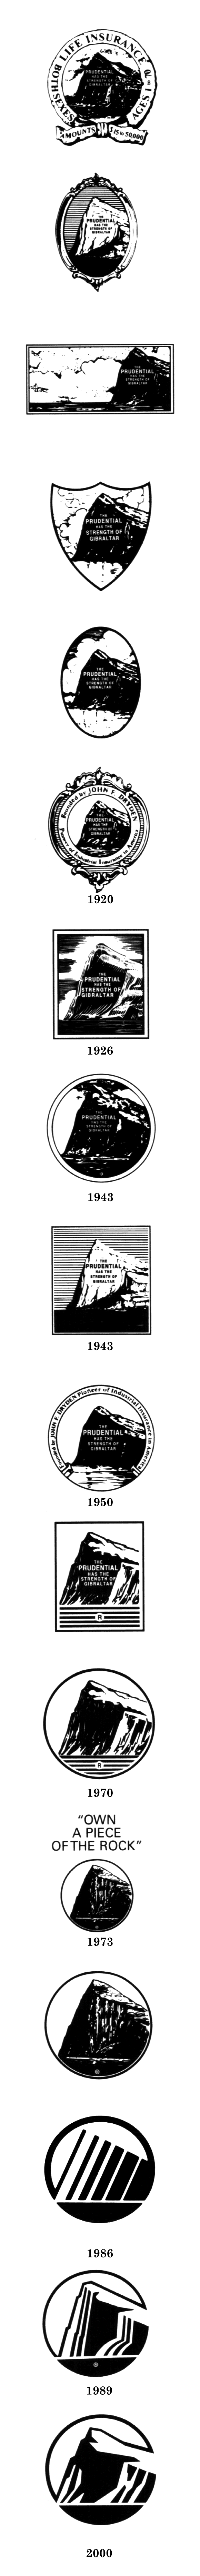 Historical Versions of the Prudentail Logo